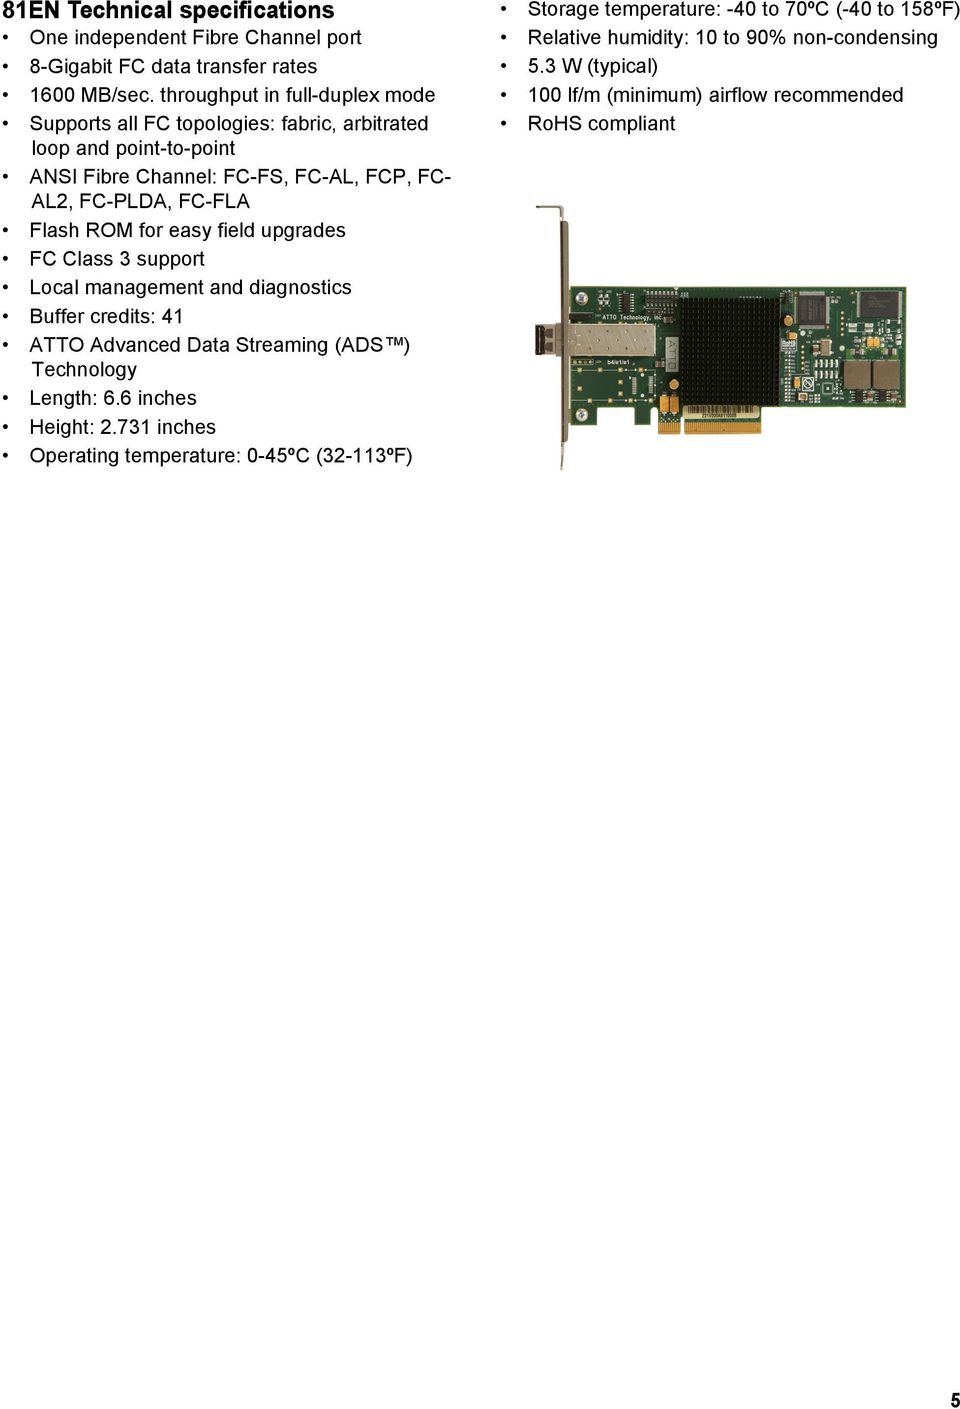 ATTO Celerity Fibre Channel Host Adapters Installation and Operation